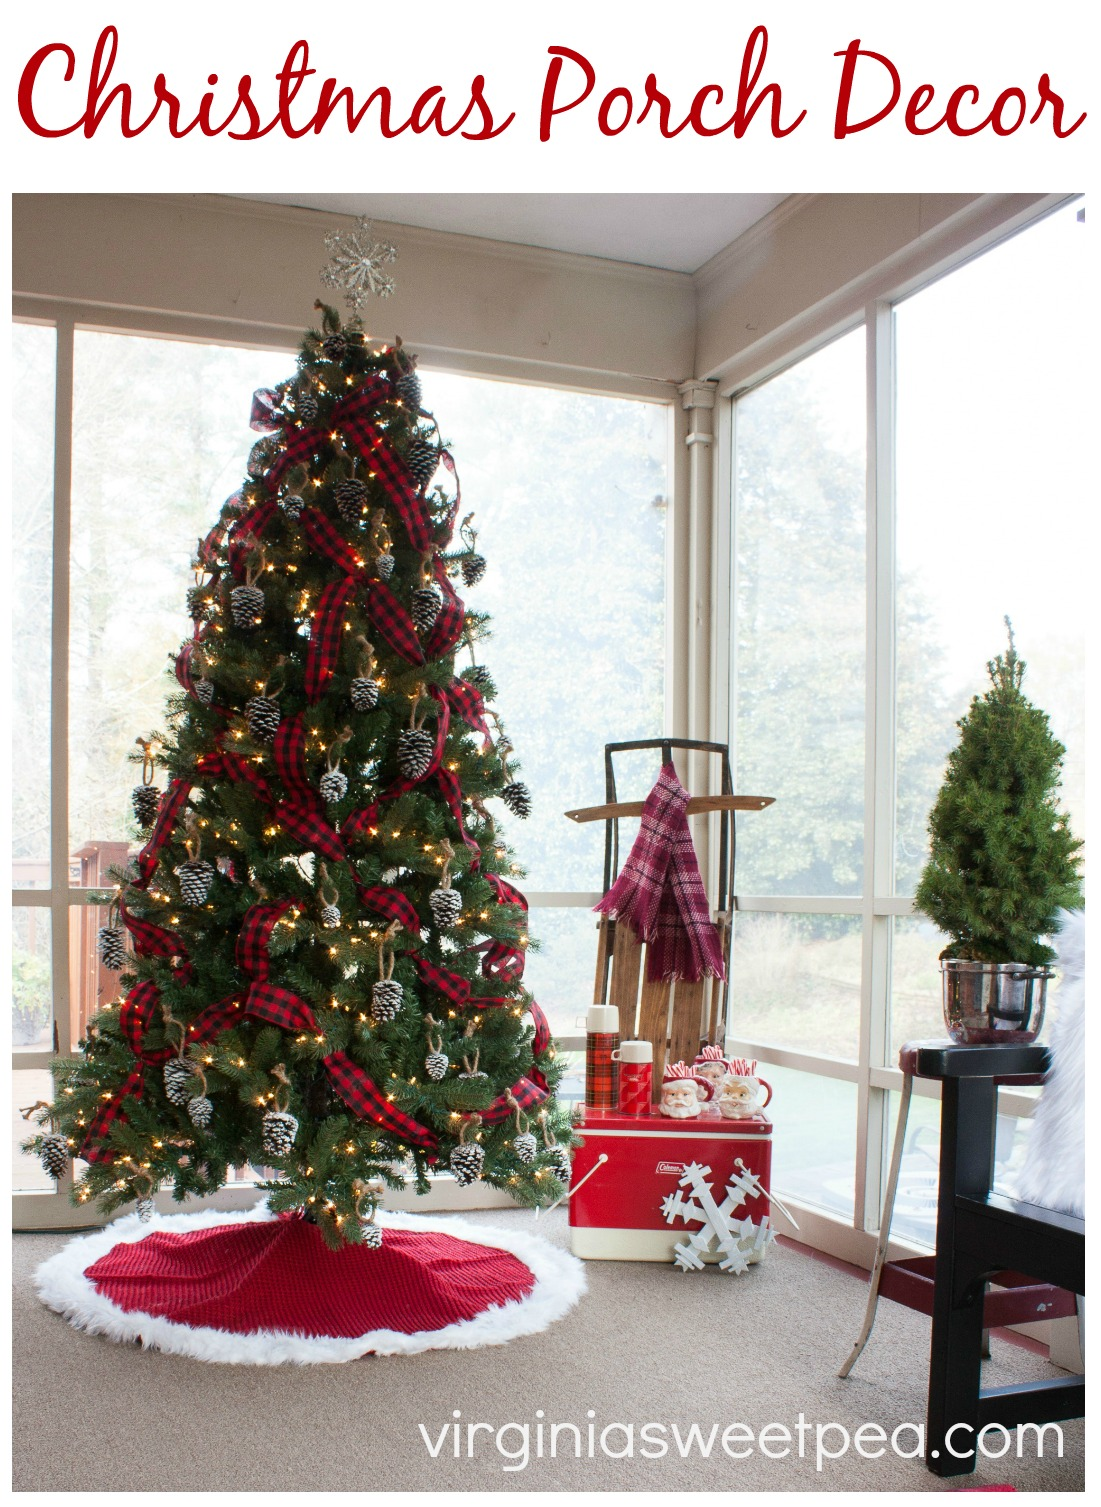 See a porch decorated for Christmas using mostly vintage decor and get ideas for decorating your Christmas porch from 18 bloggers.